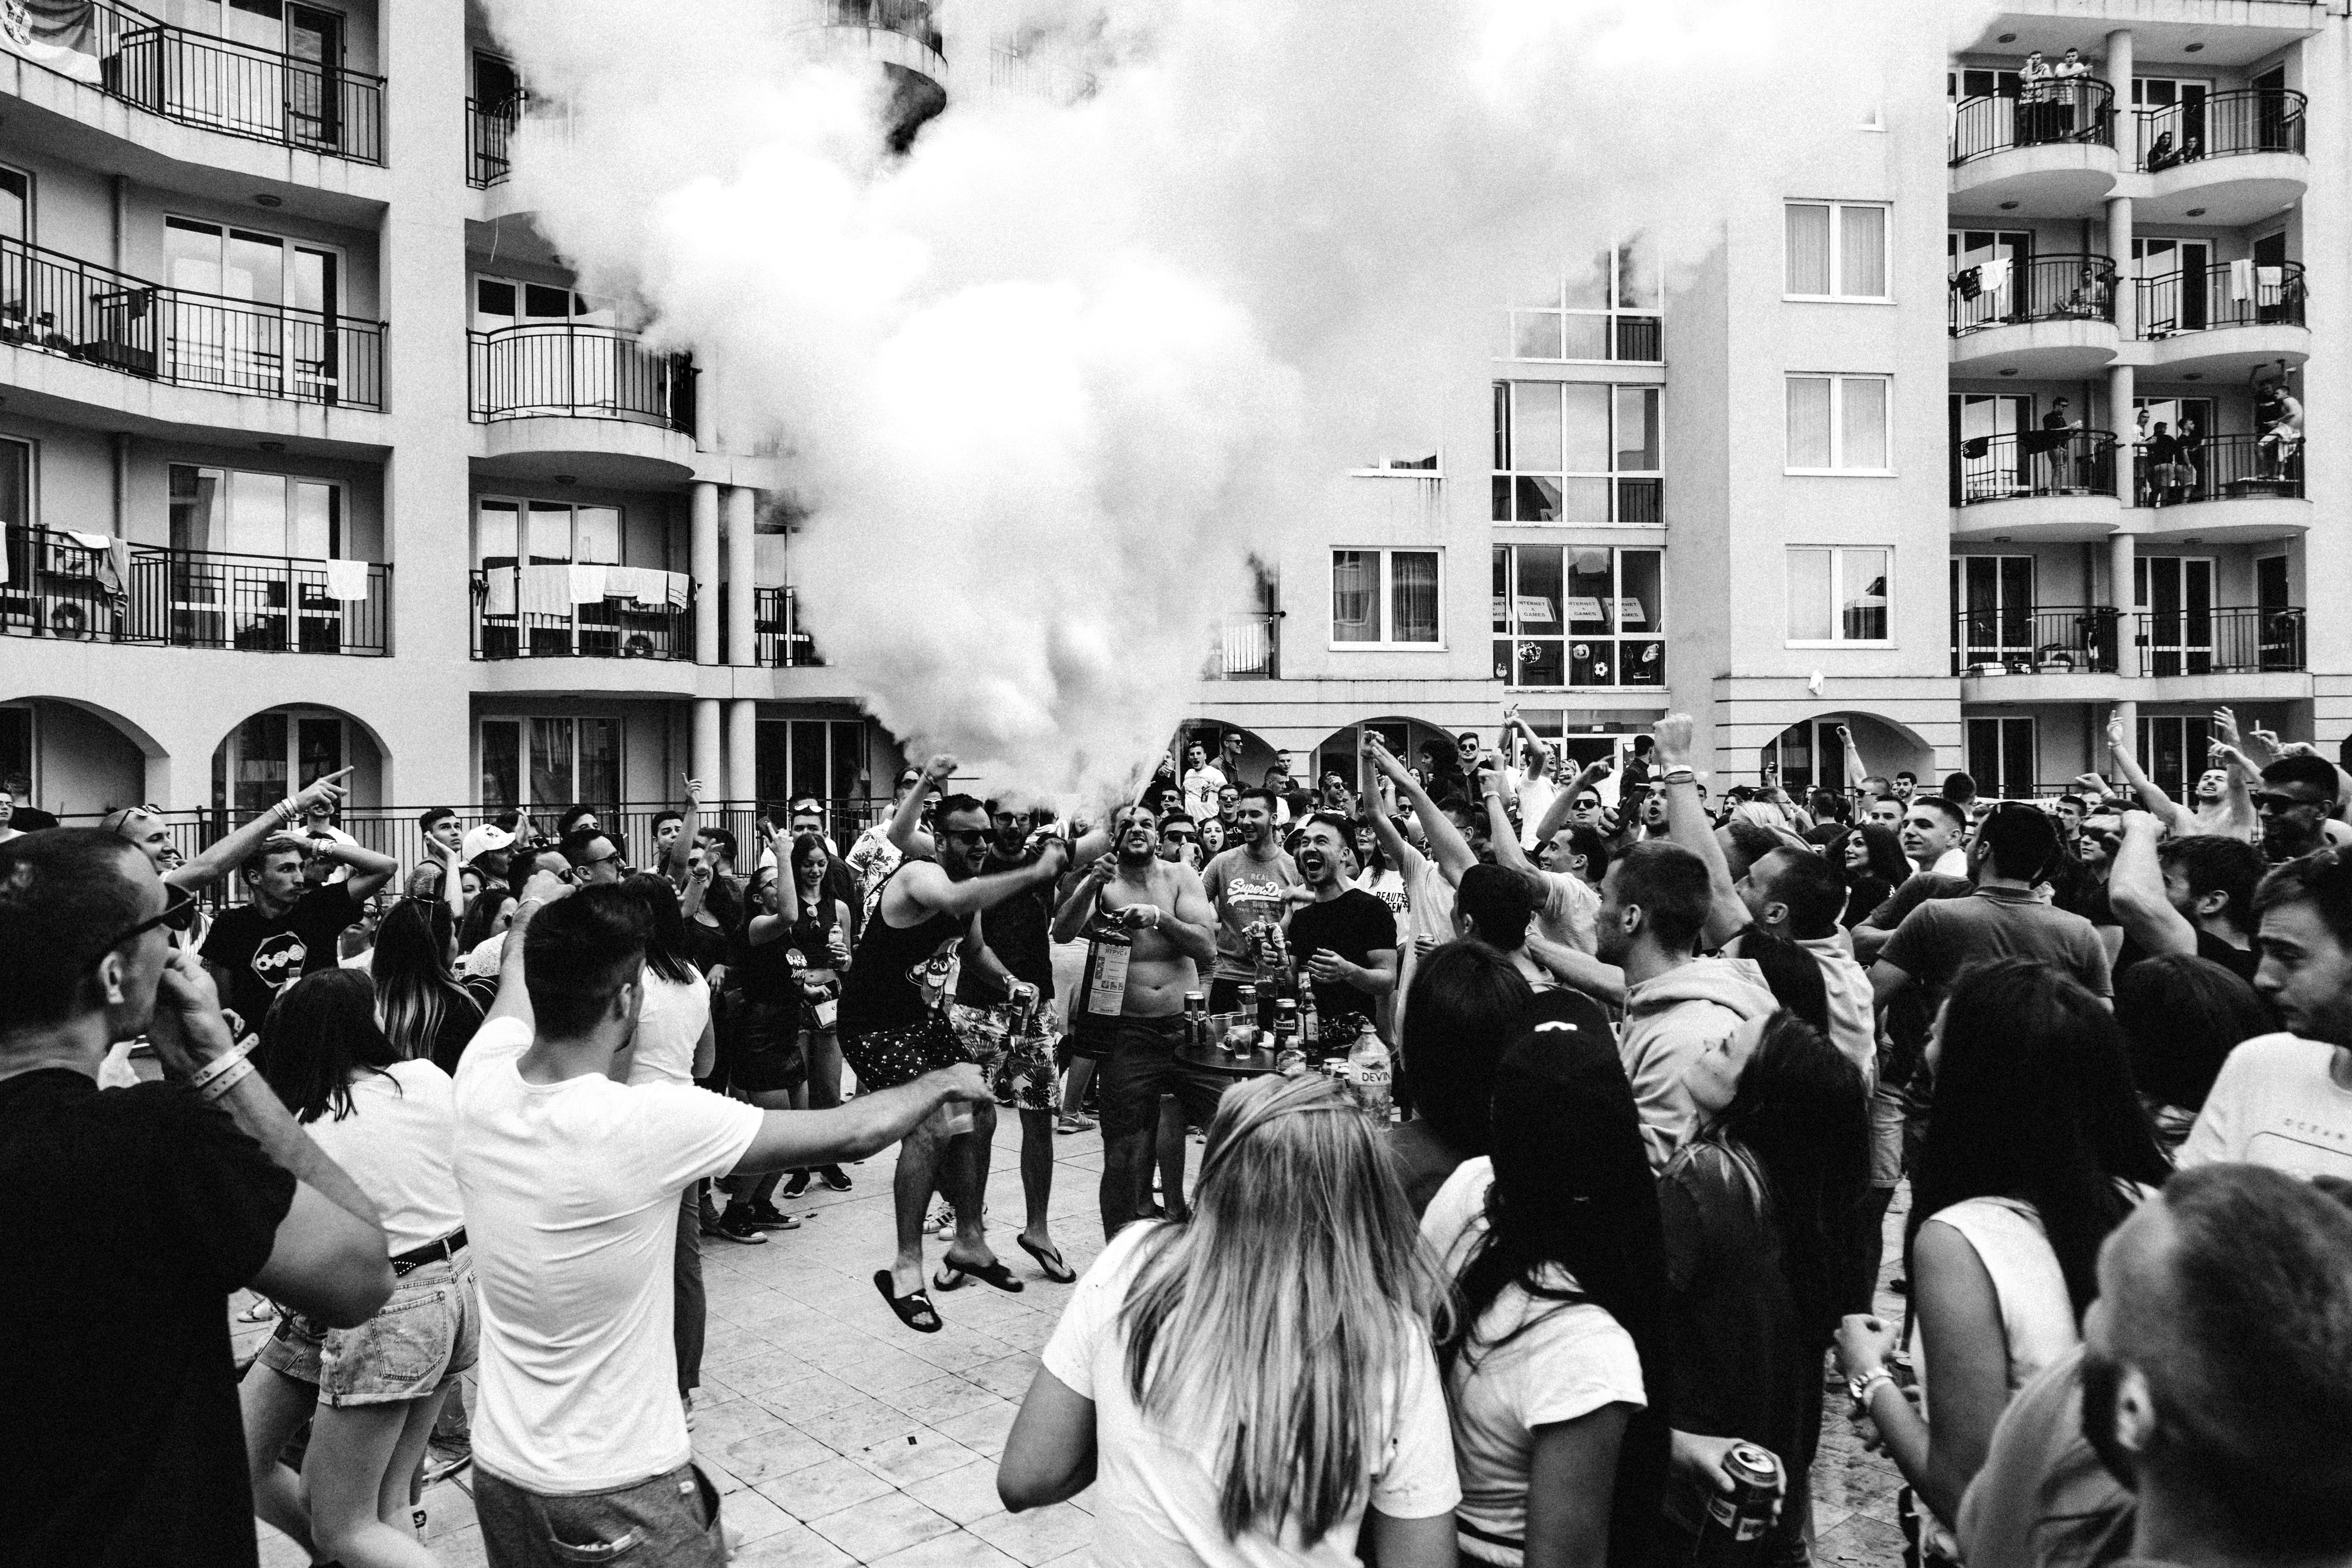 crowded people on road on grayscale photo